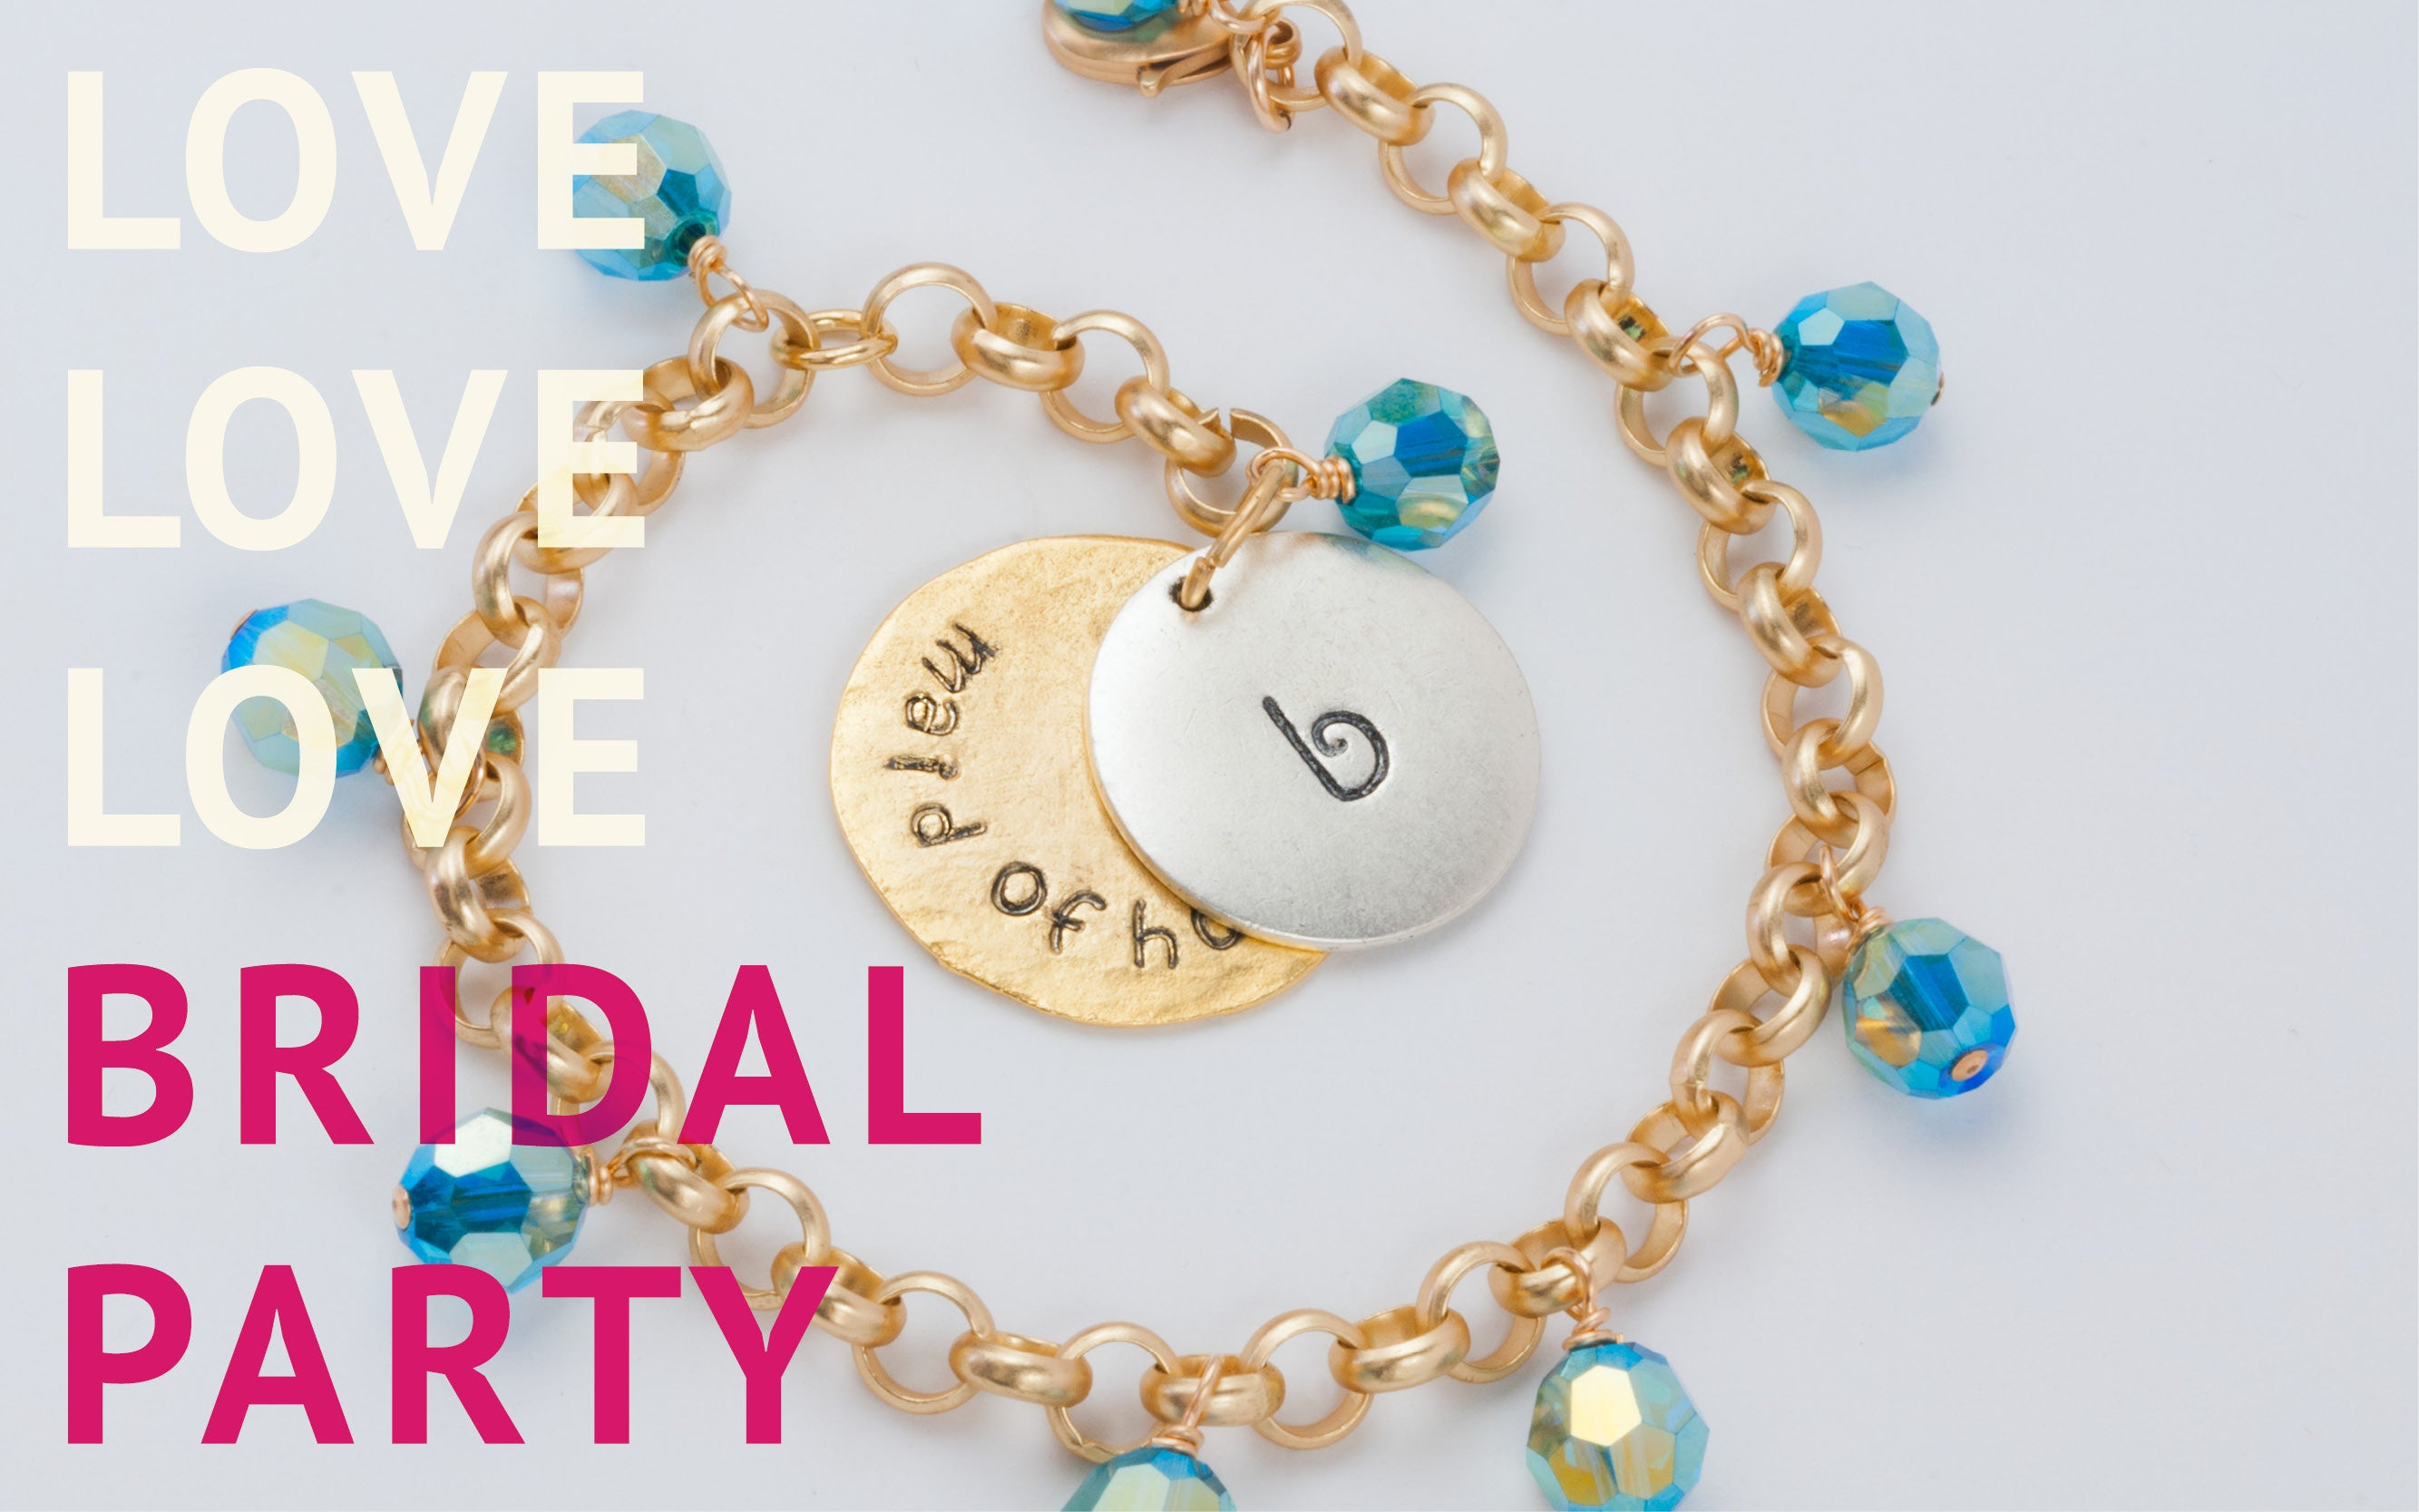 Love Bridal Party collection: custom bracelets and pins to celebrate and honor those walking with you